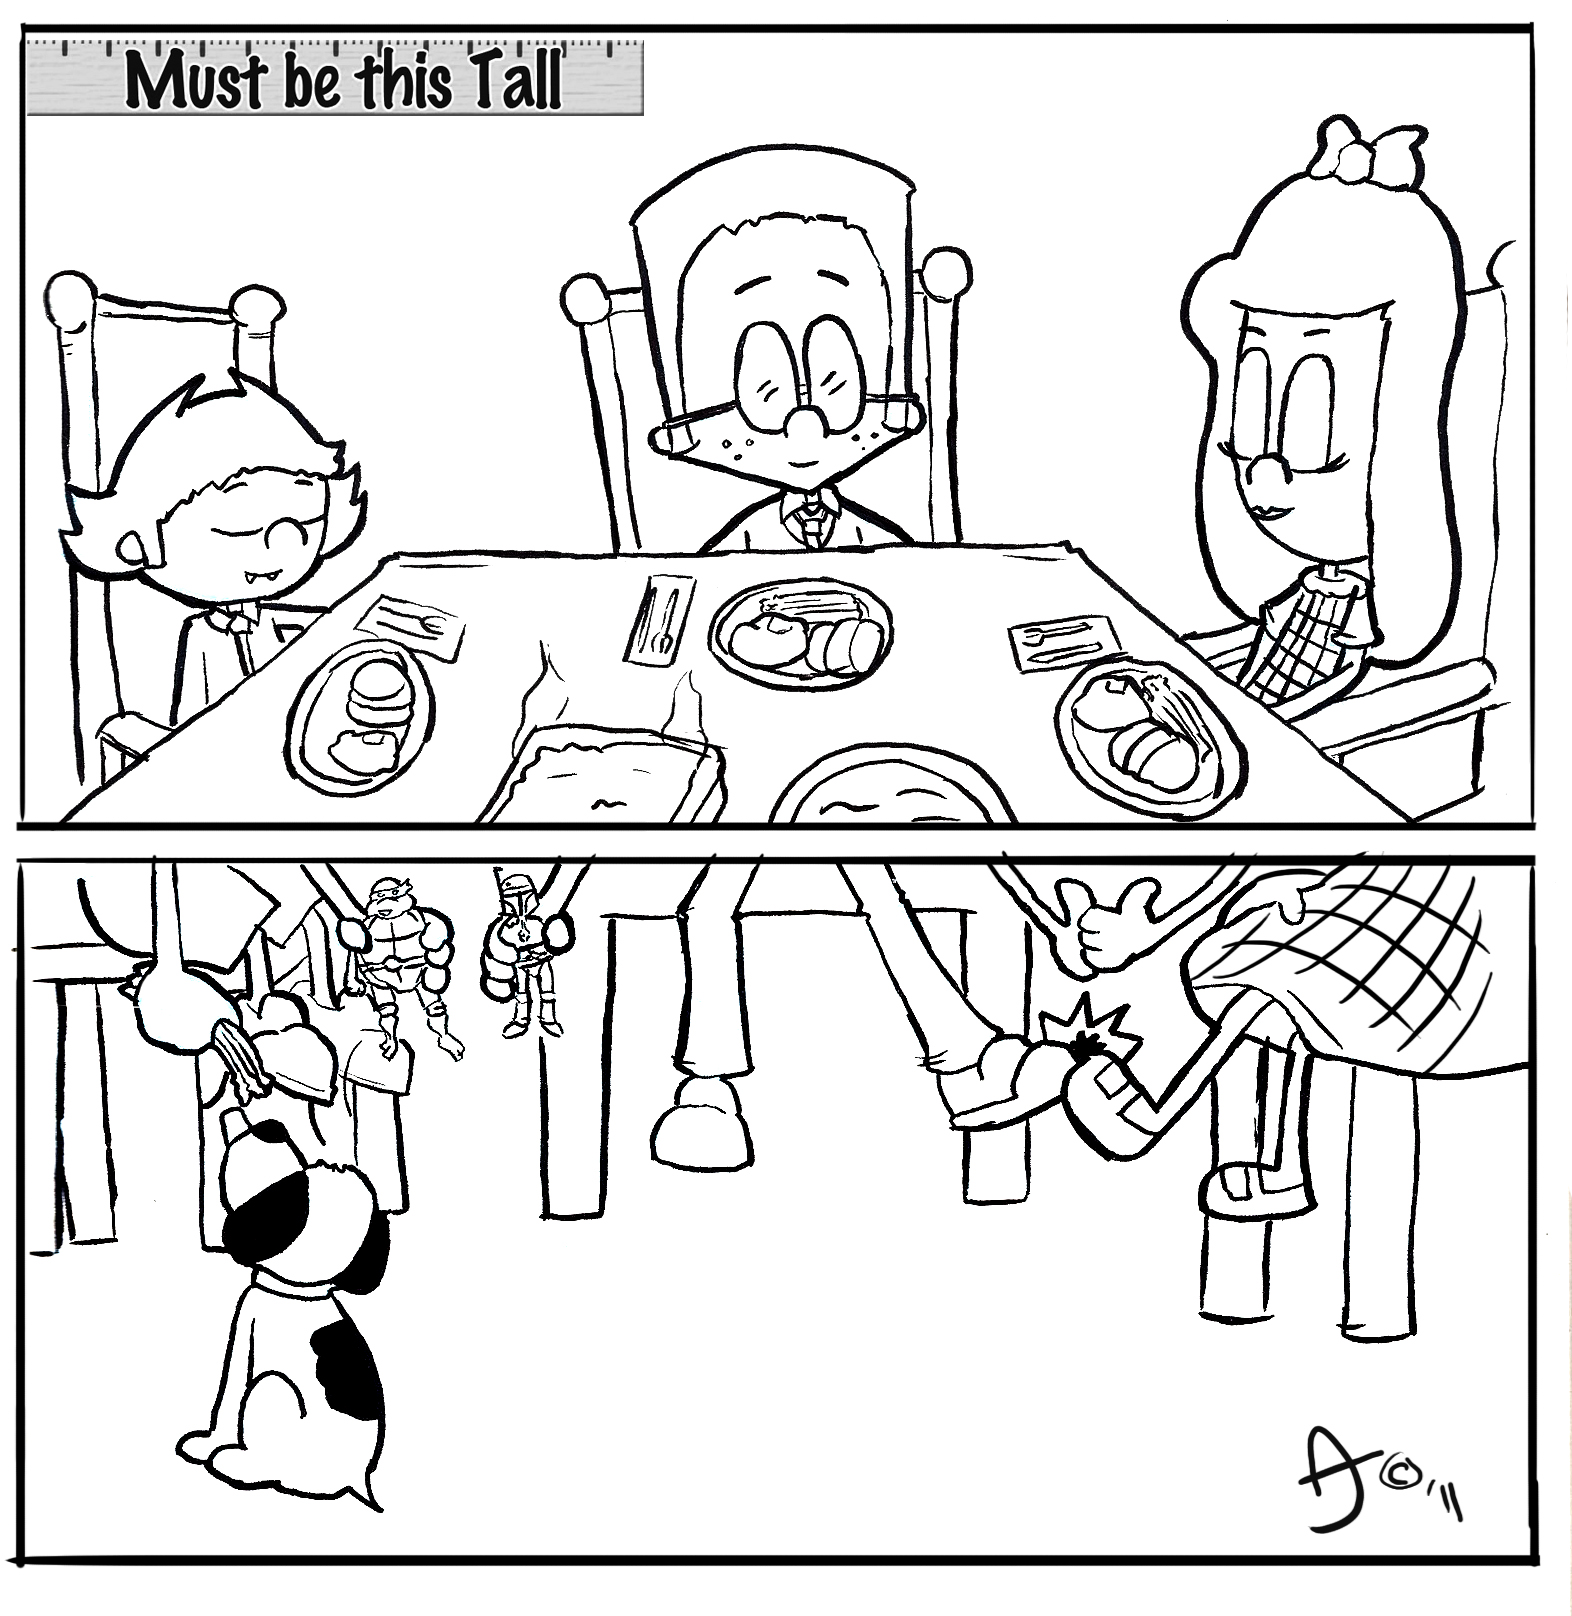 1572x1616 Well Behaved Kids Table Happy Thanksgiving Mustbethis